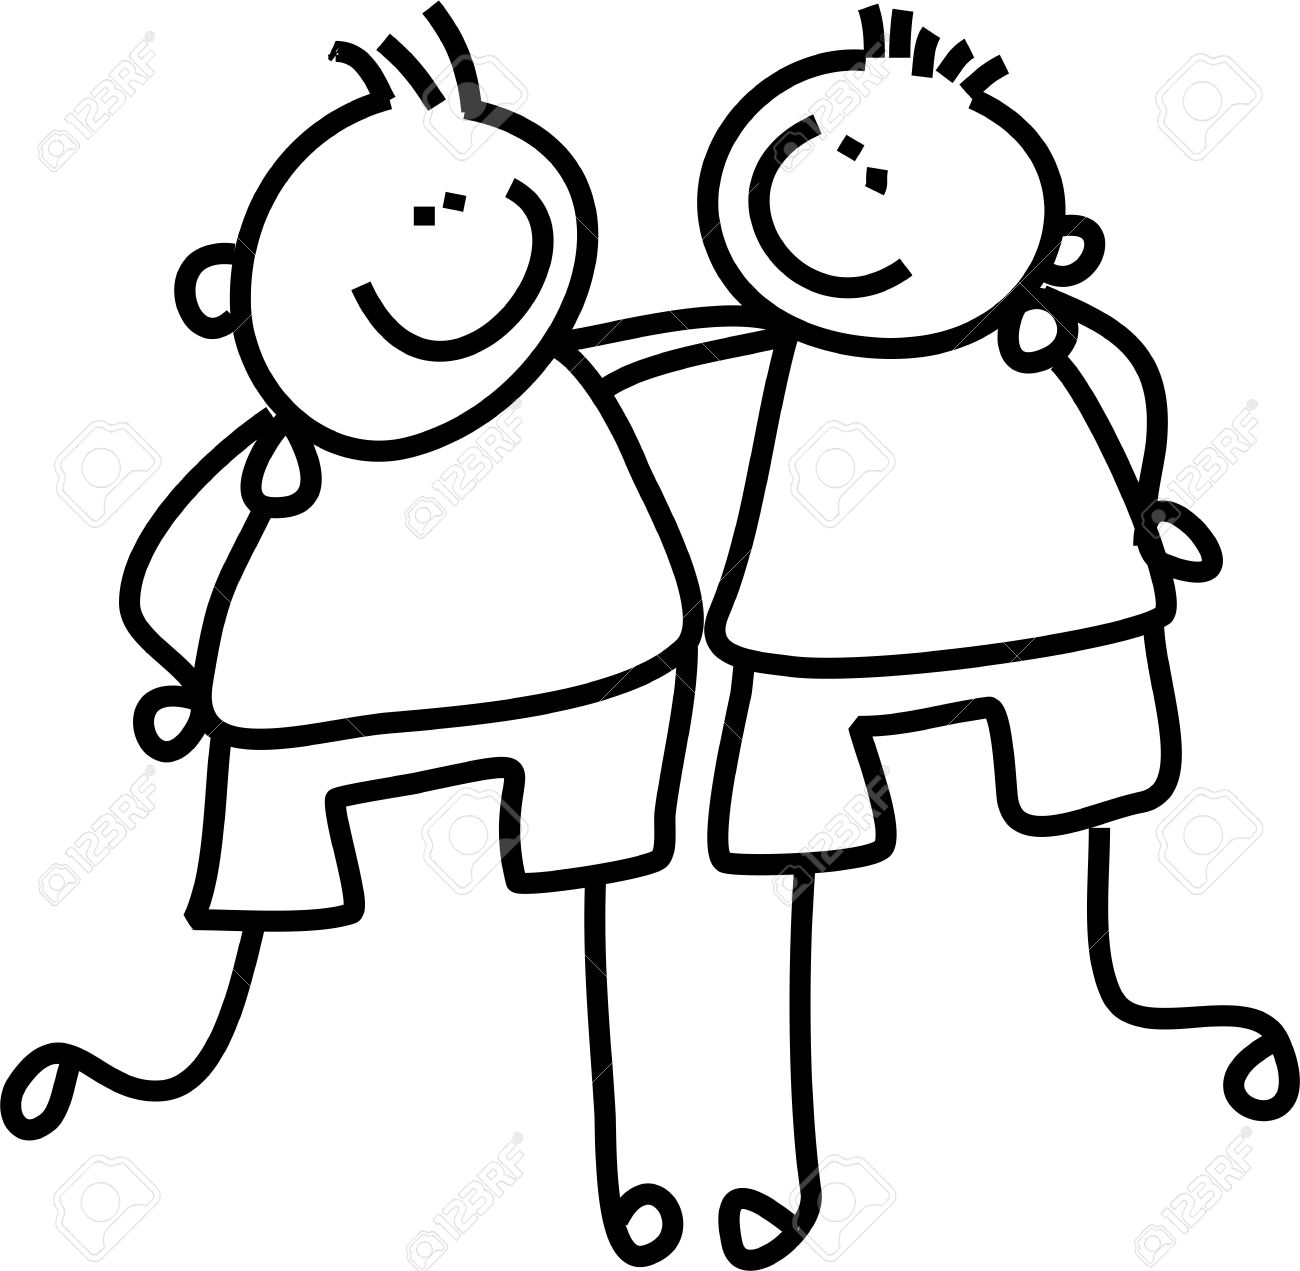 Friendship Clipart Black And White.